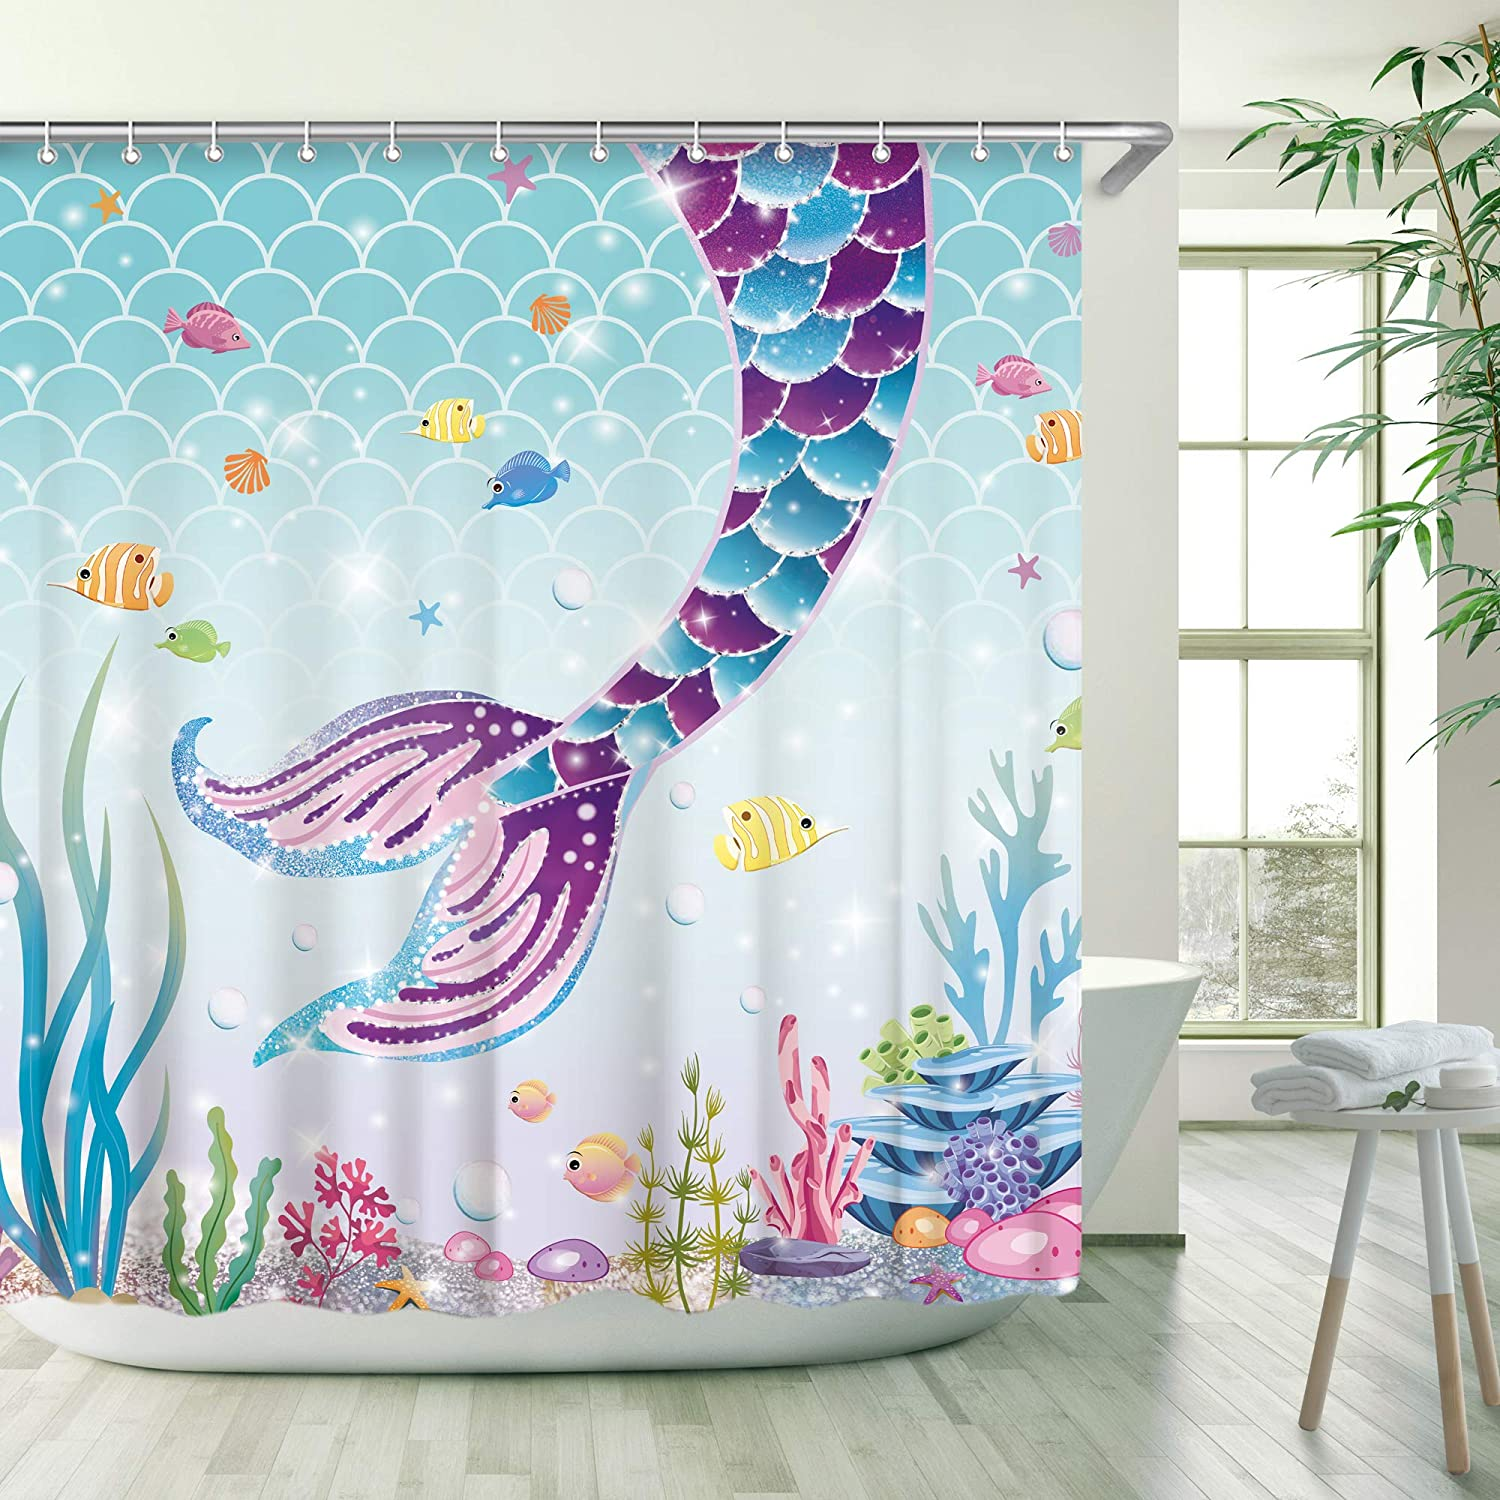 RosieLily Mermaid Tail Shower Curtain for Kids Bathroom Fish Scale Ocean Theme, 3D Purple and Blue Mermaid Tail Shower Curtain Seaweed Decor with 12 Hooks 72 Inch